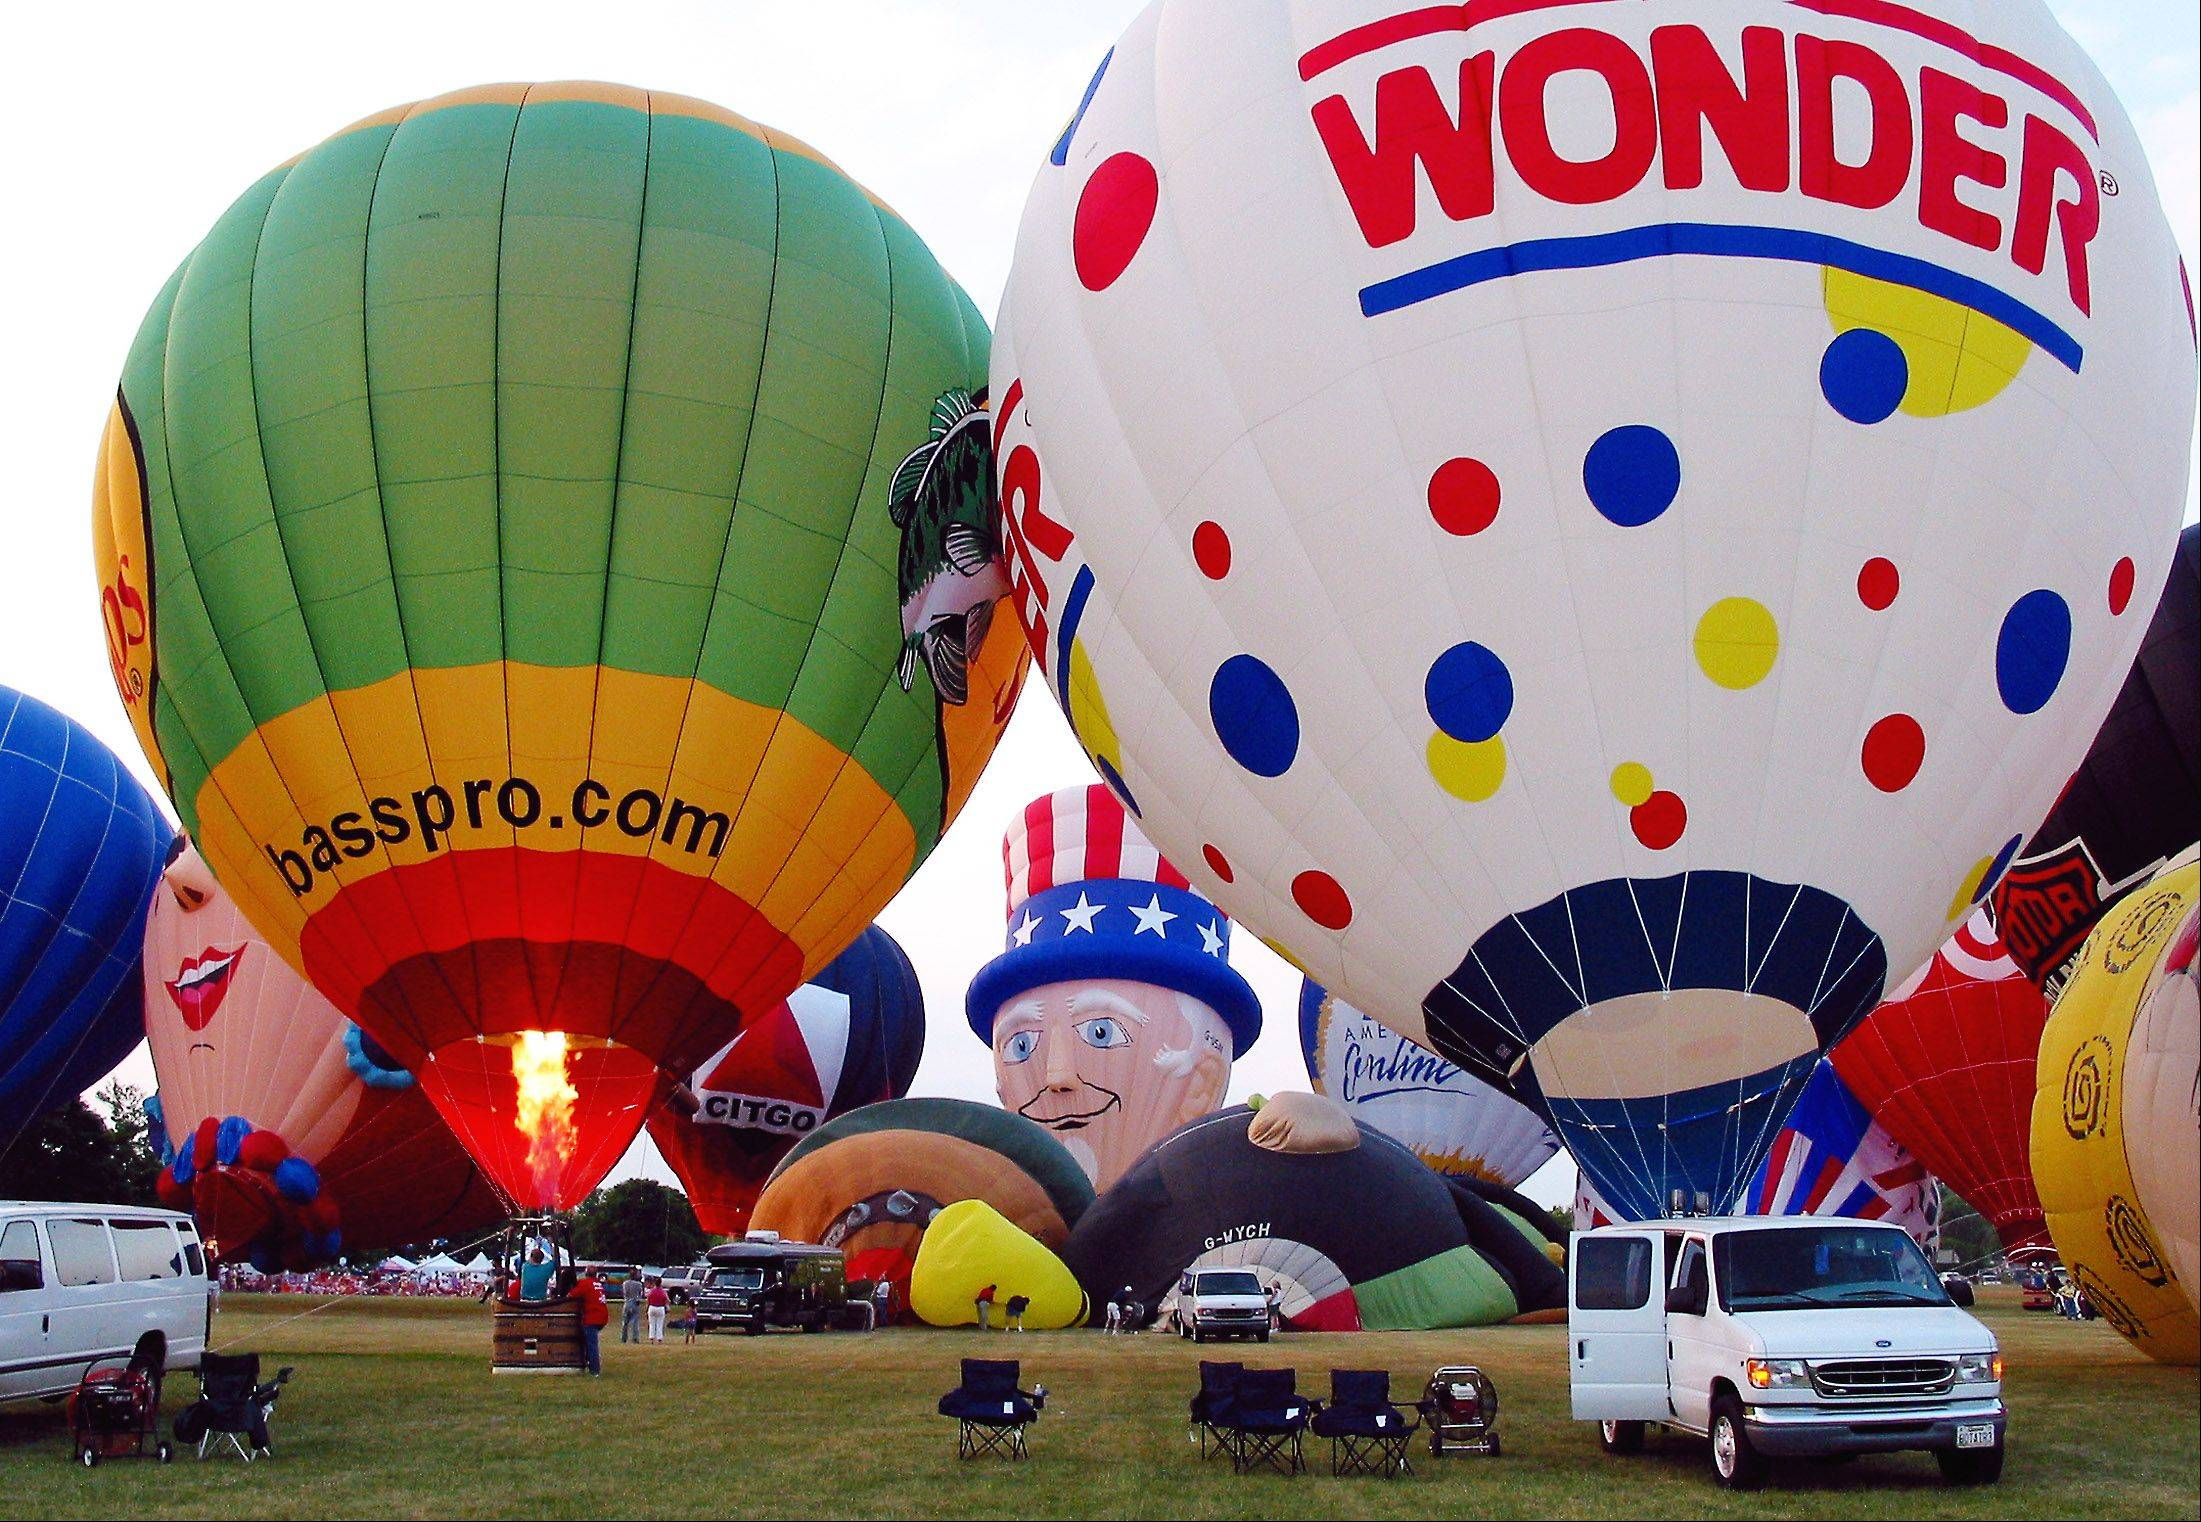 Balloon launches will be at 6 a.m. and 6 p.m. Wednesday to Saturday, weather permitting, during Lisle's Eyes to the Skies festival.